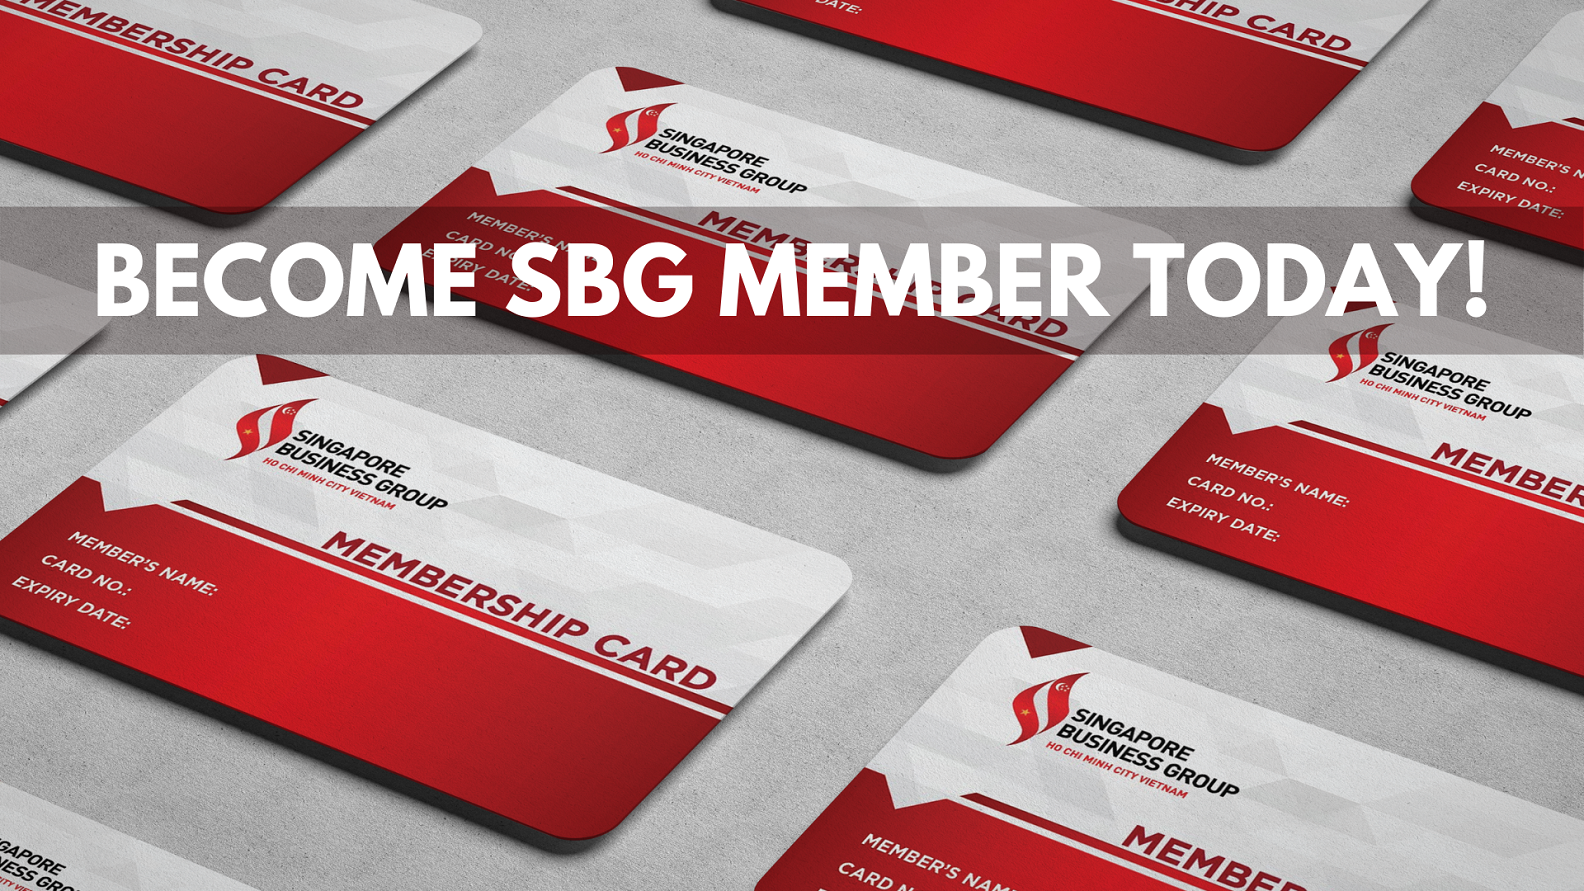 BECOME SBG MEMBER TODAY